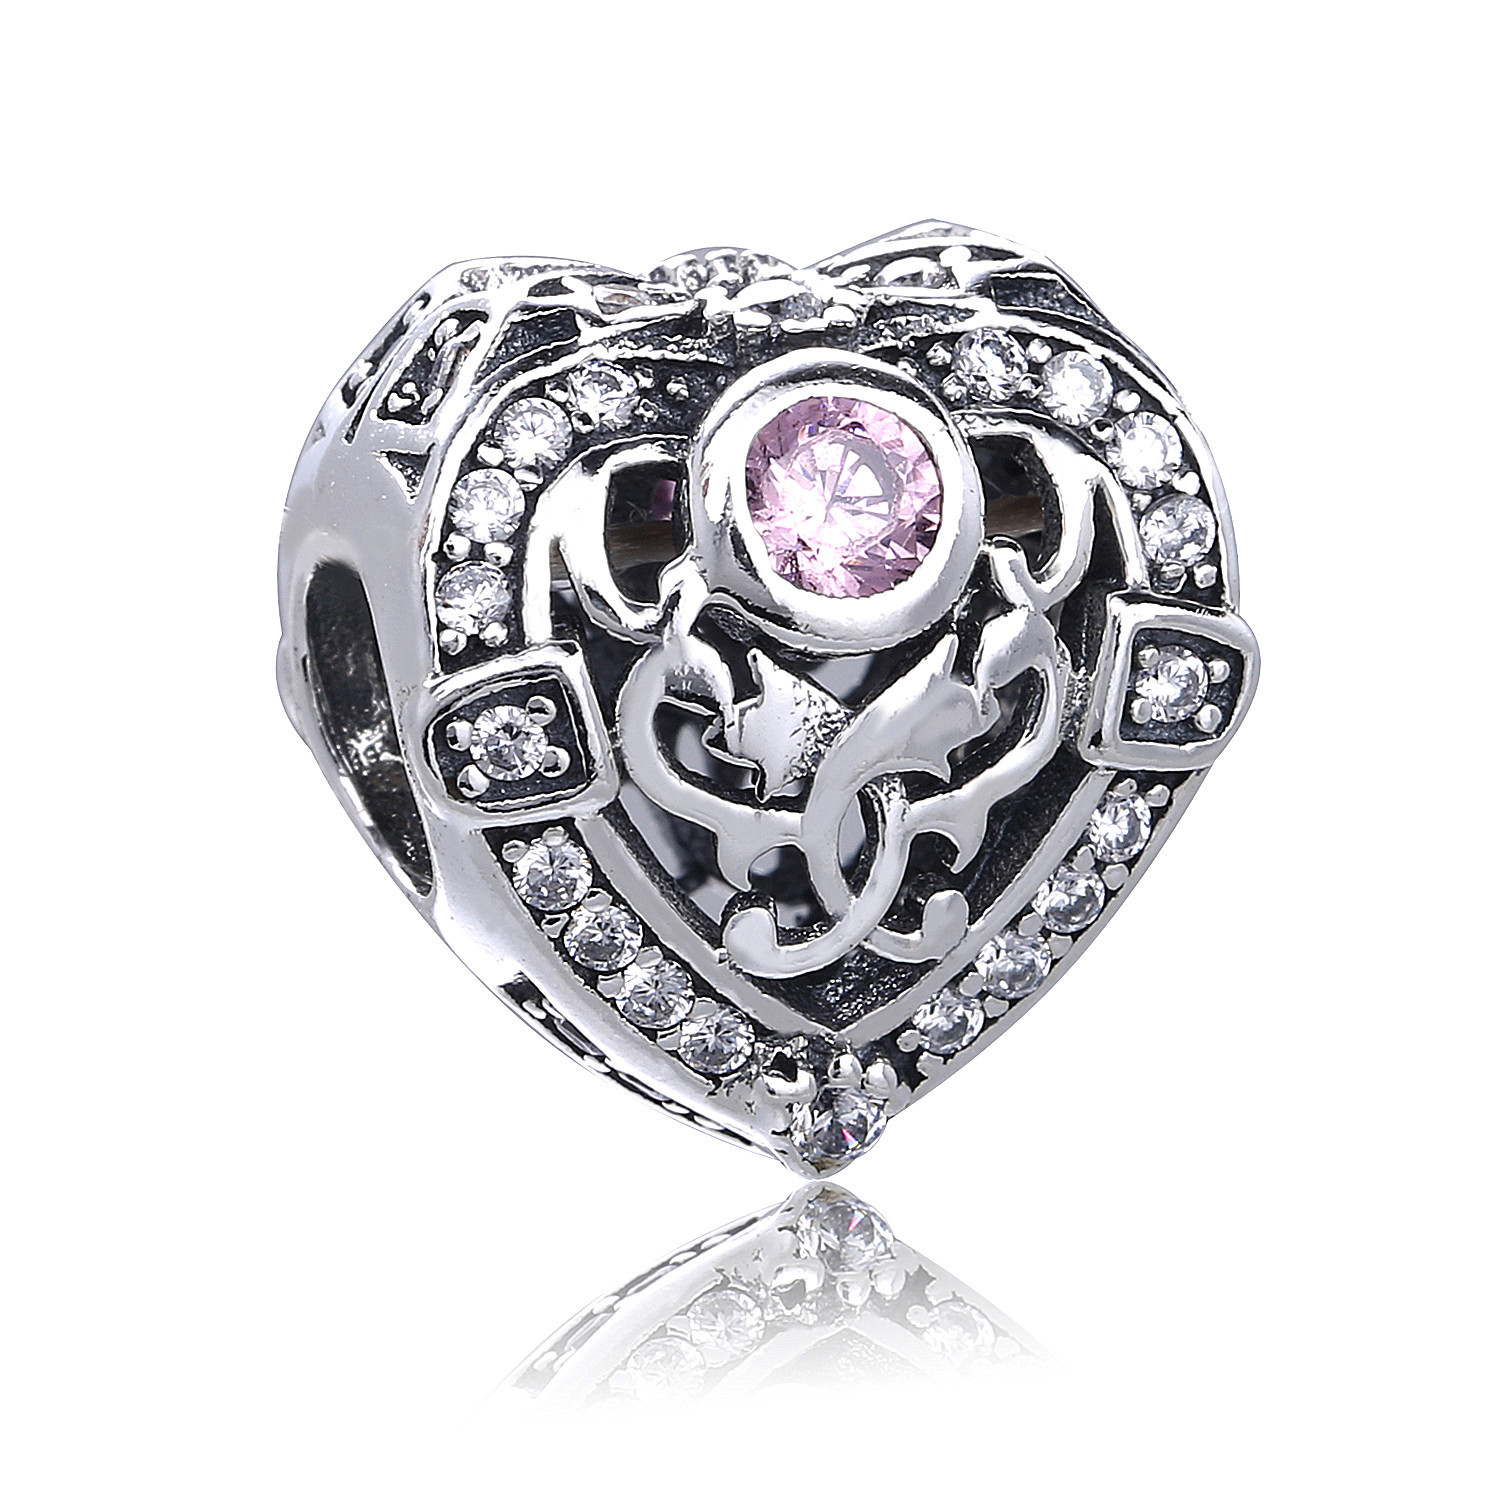 2017 Winter DIY Fit Original Pandora Charms Bracelets Opulent Heart Orchid Charm With Clear Pink CZ 925 Sterlings Silver Beads